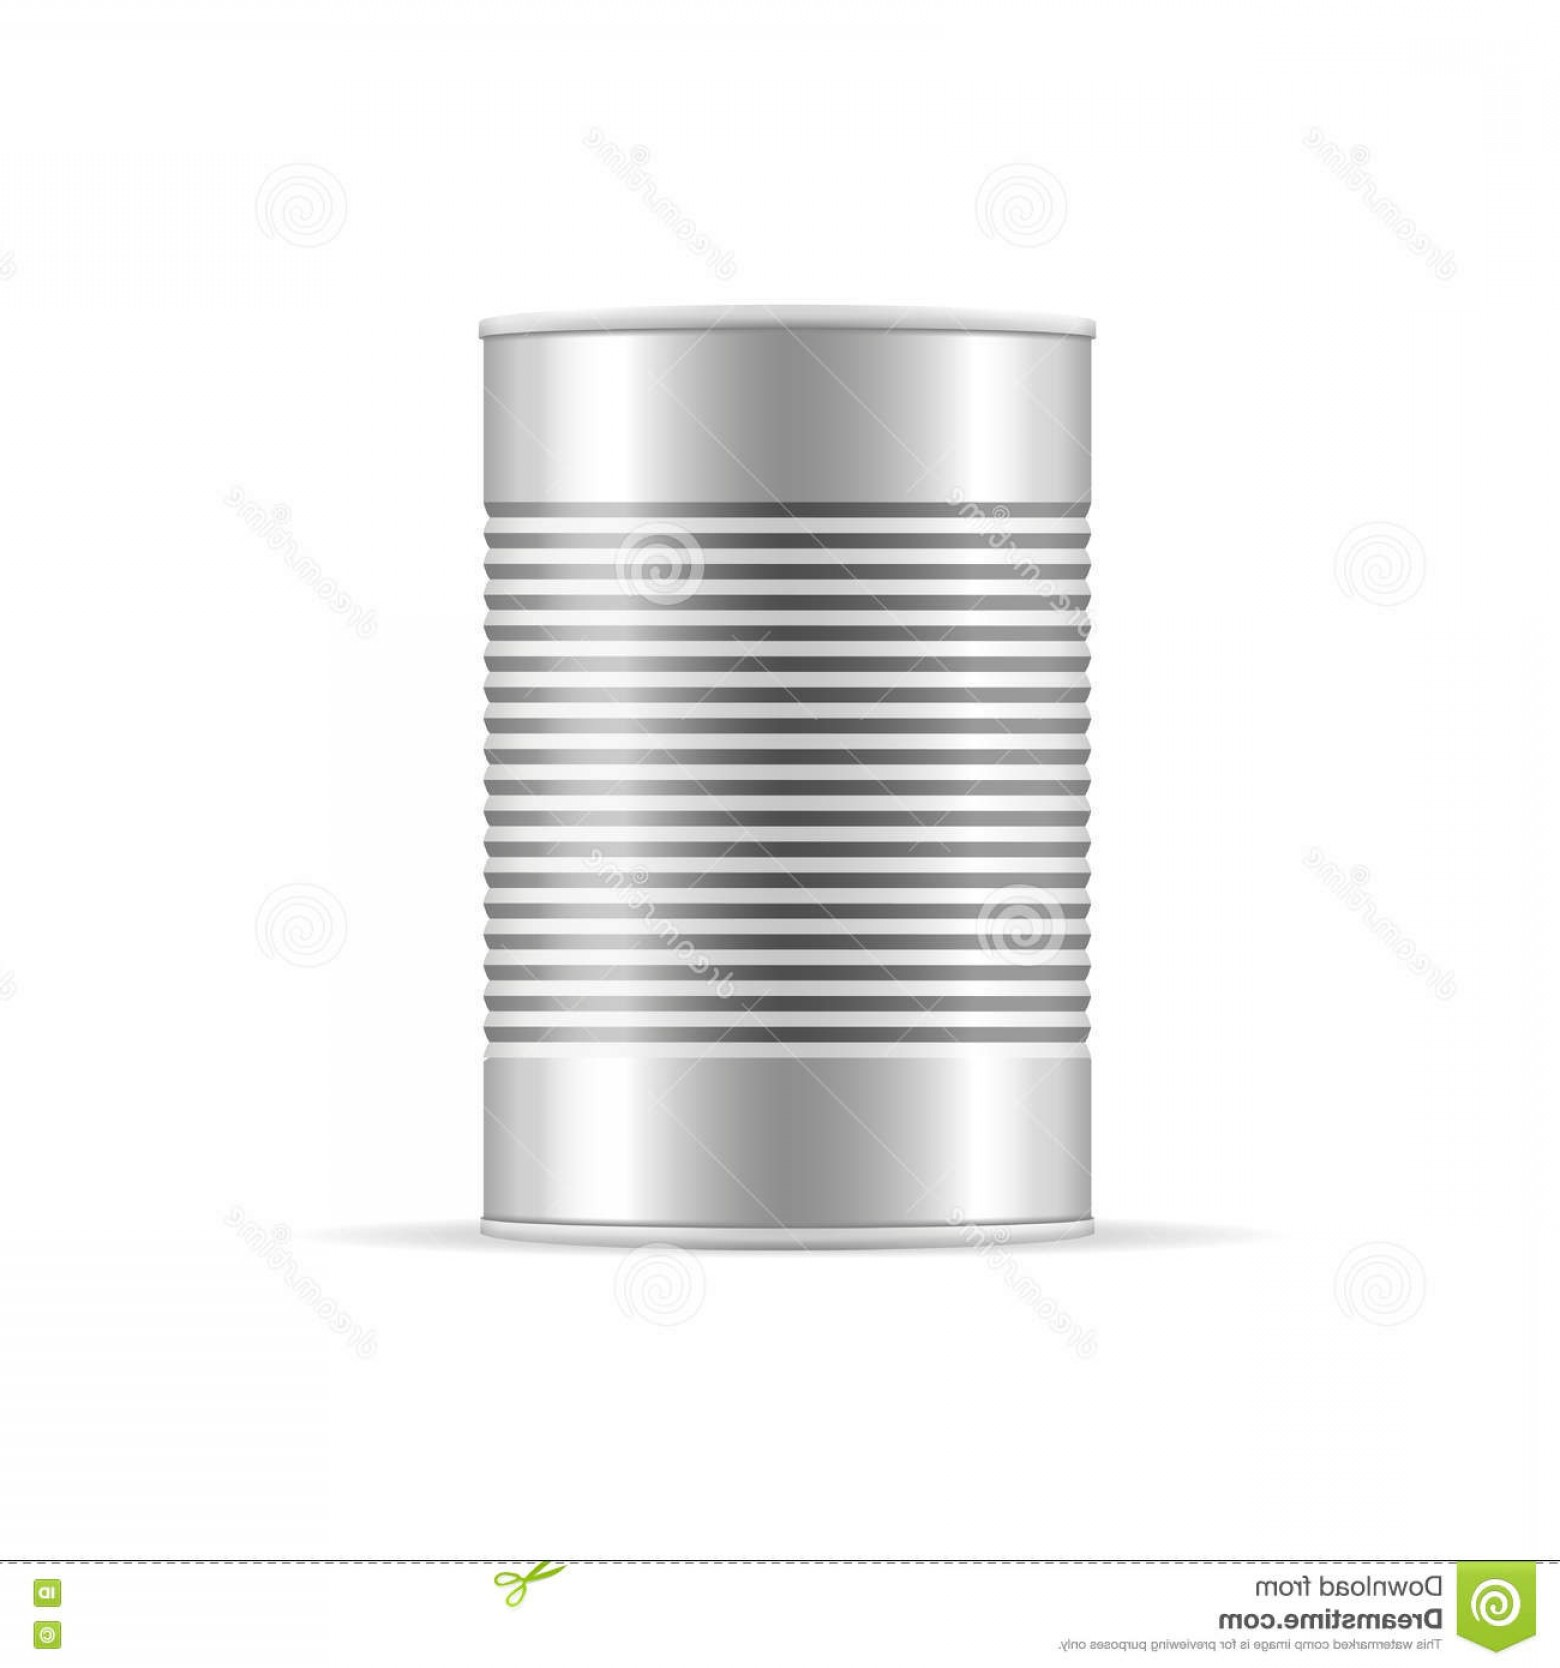 Can Vector: Stock Illustration Ribbed Tin Can Vector Packaging Mockup Your Design Metallic Canned Food Product Illustration Image